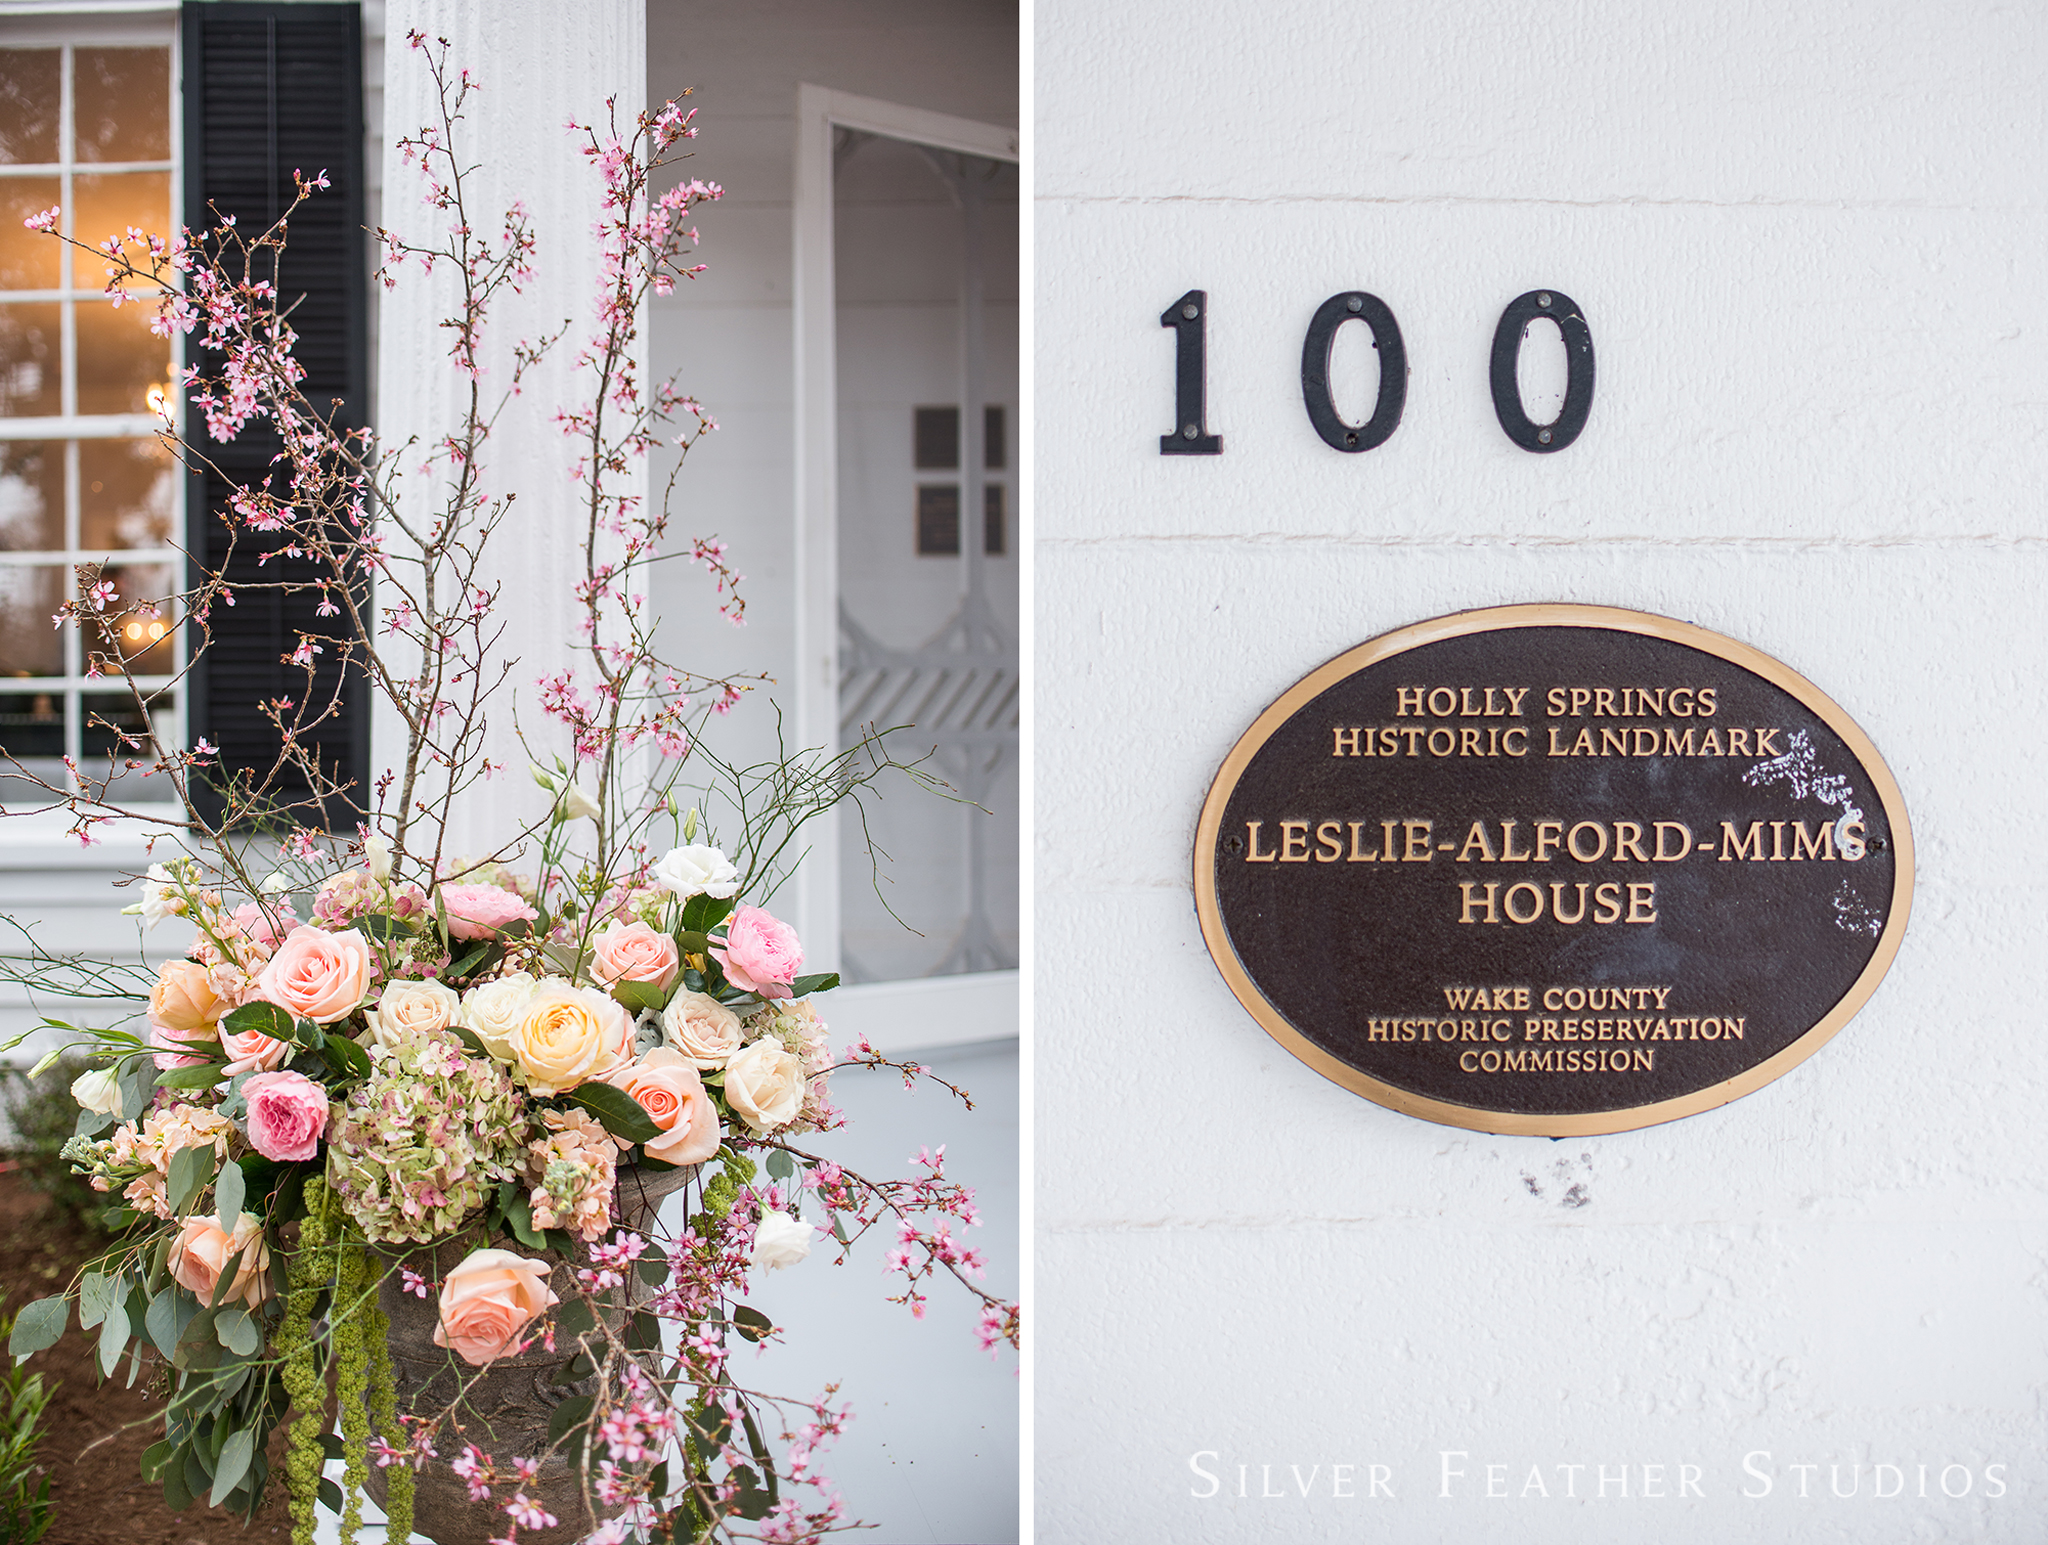 Grand opening party of the recently restored historic landmark, the Leslie Alford Mims House. © Silver Feather Studios